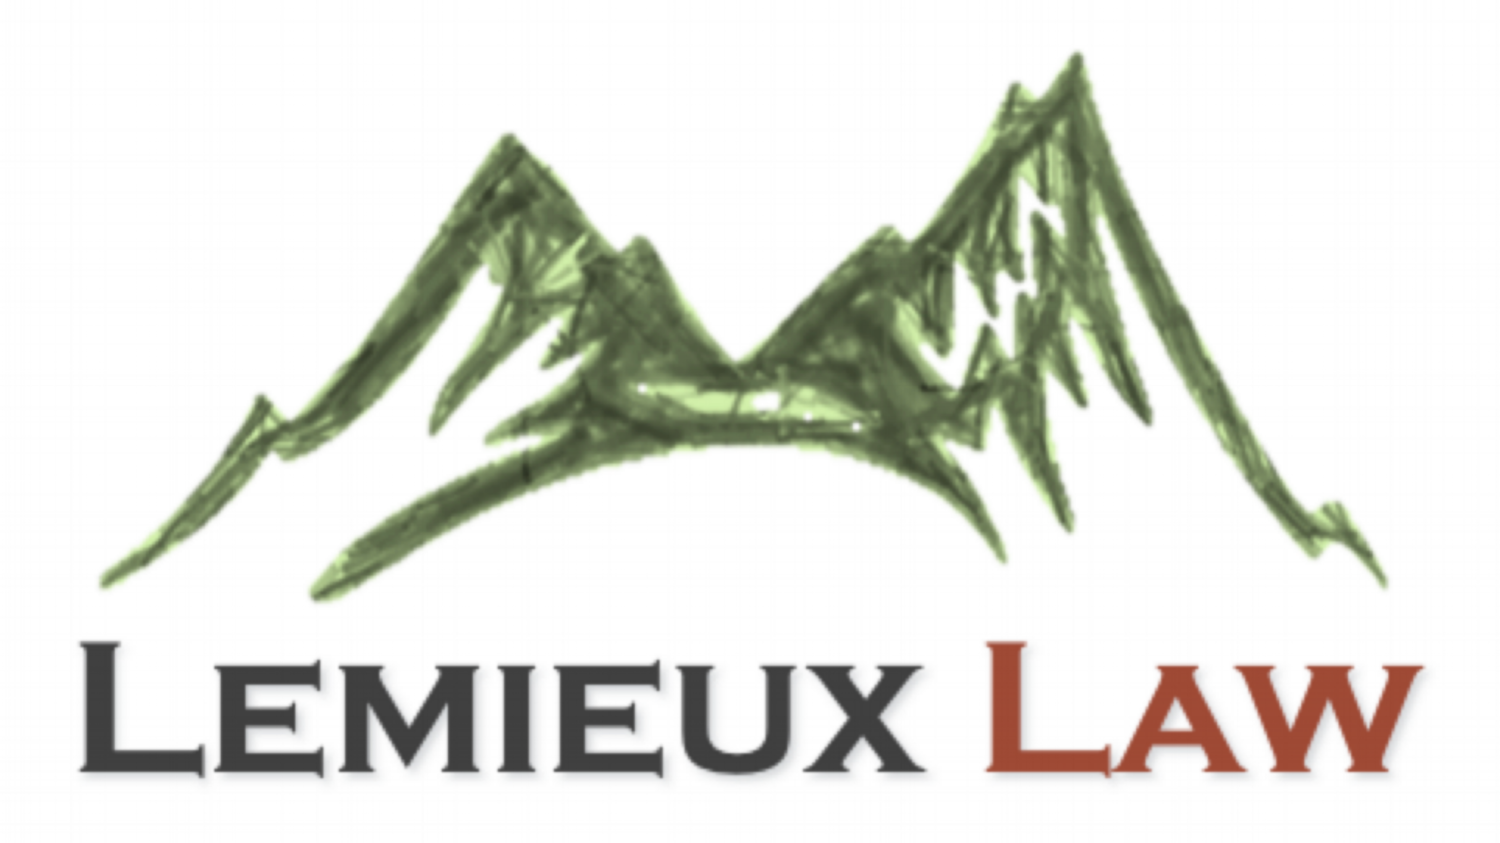 Lemieux Law